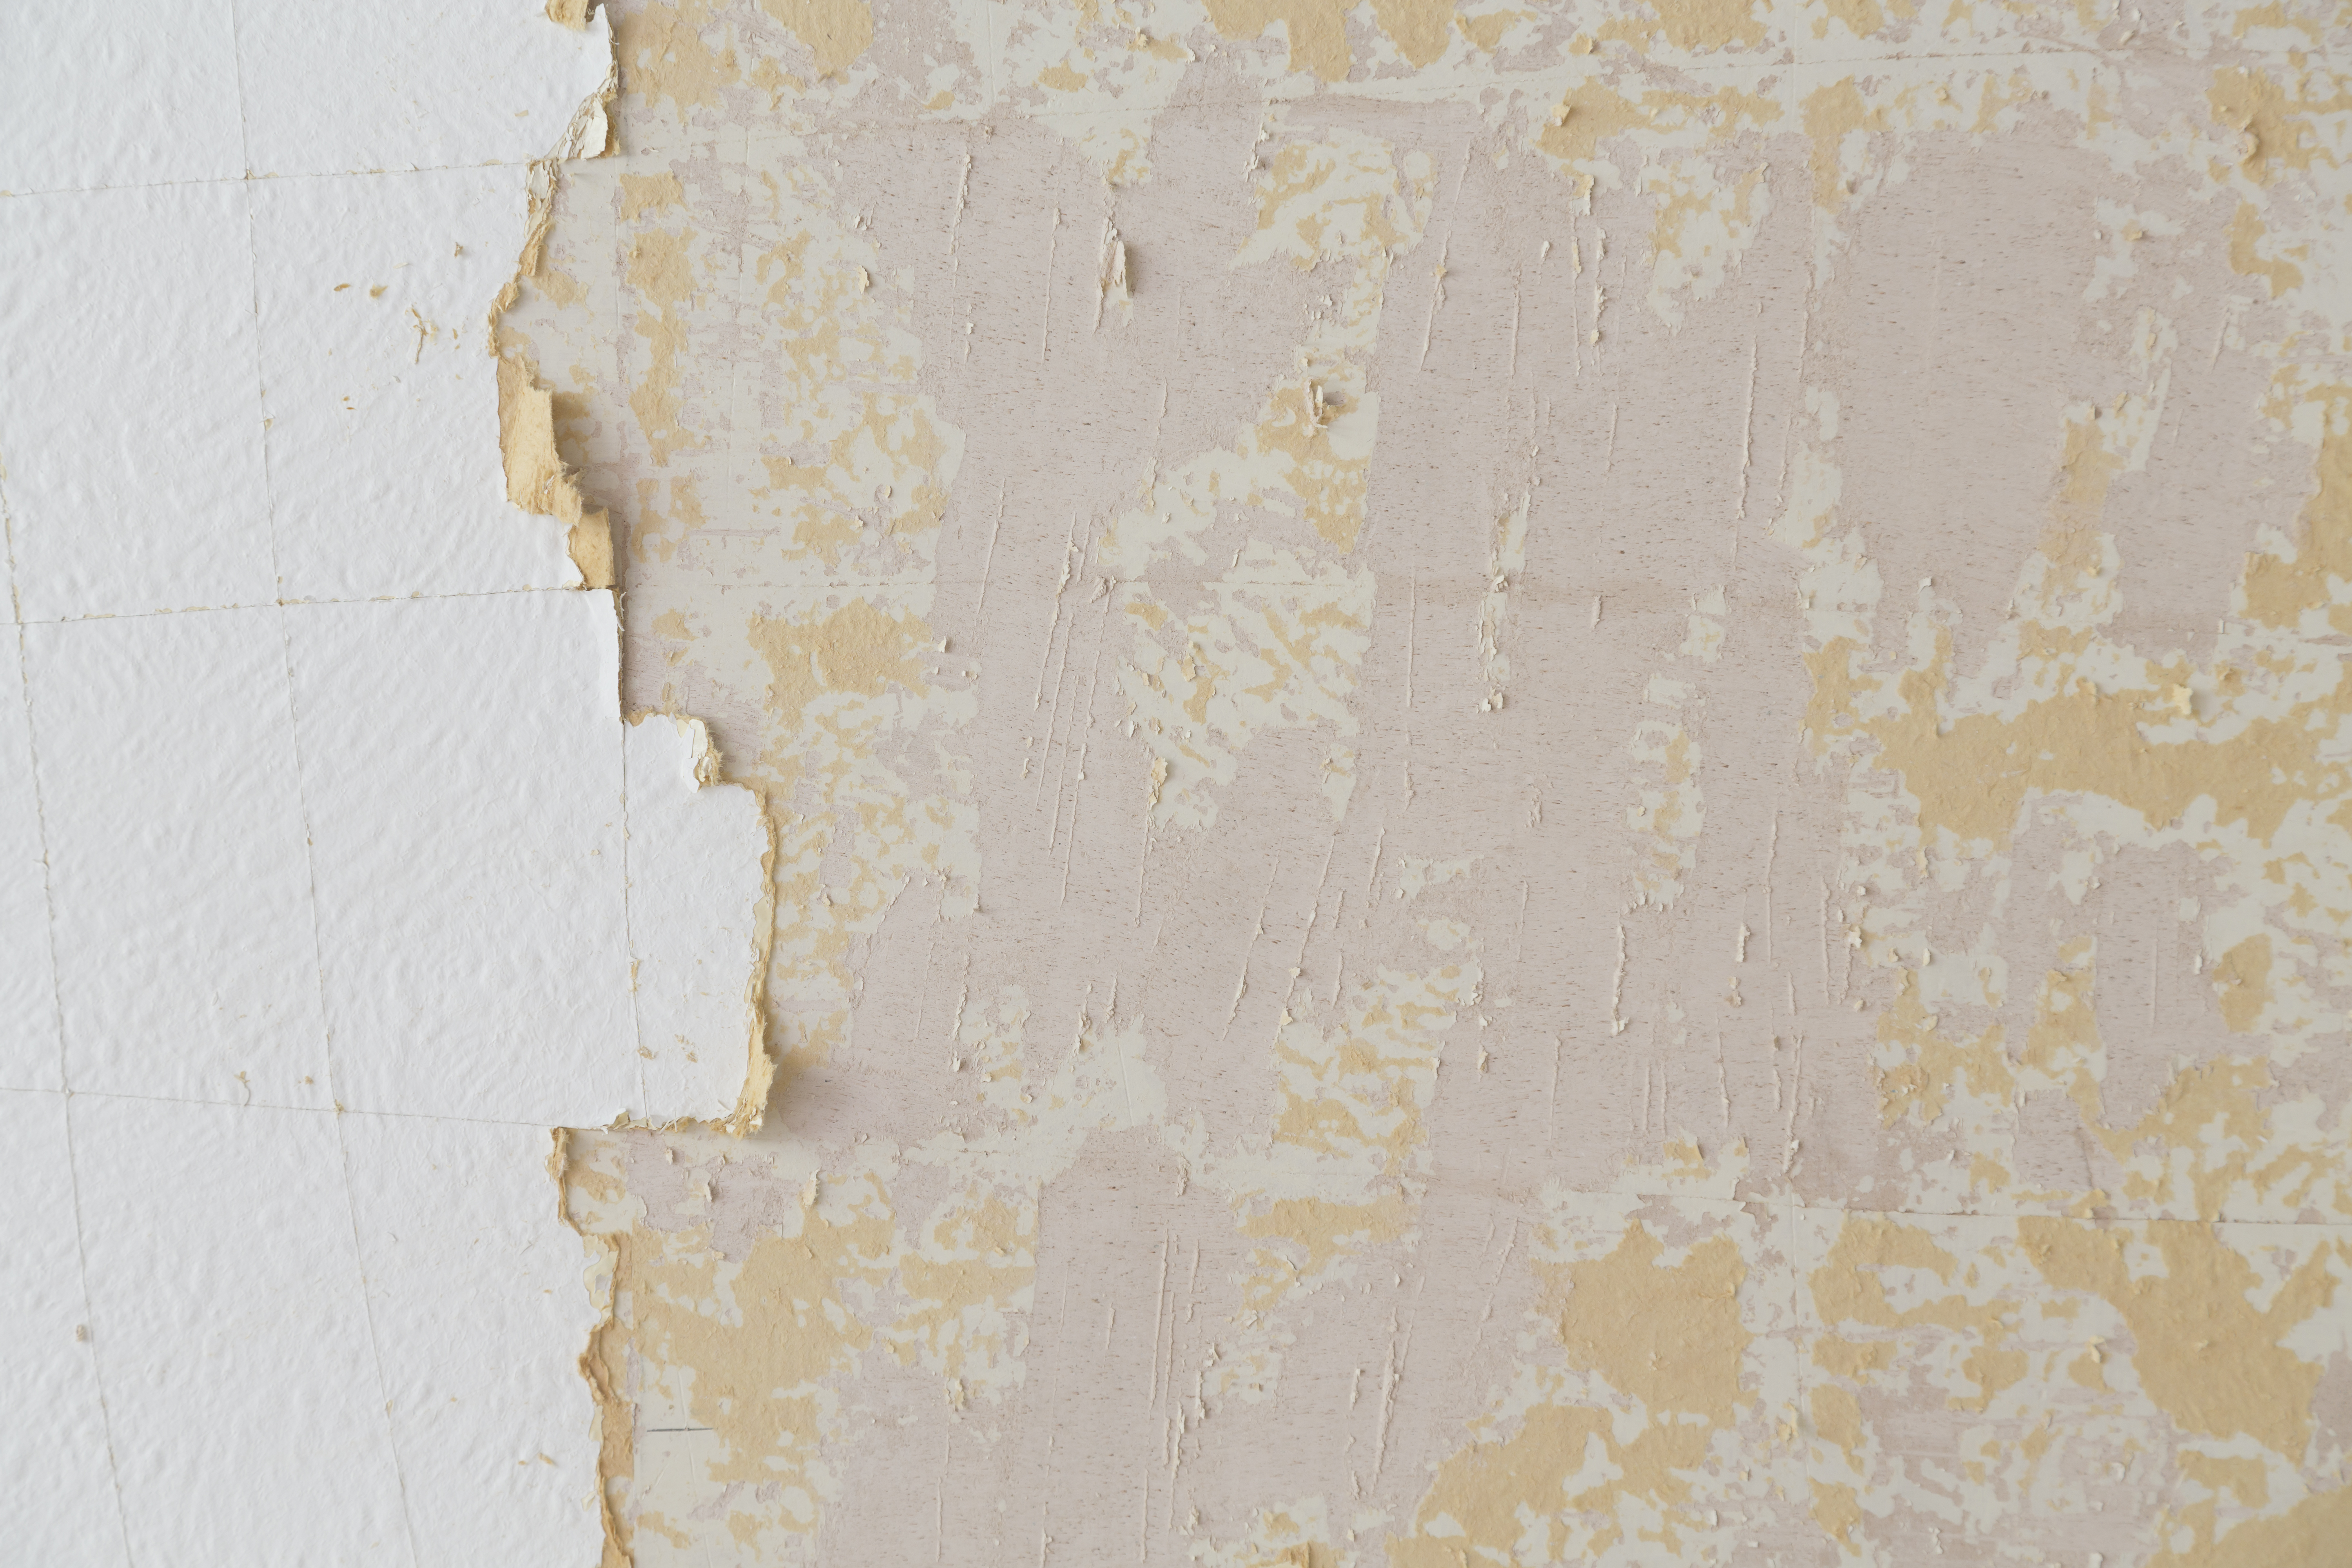 How To Remove Wallpaper House Method